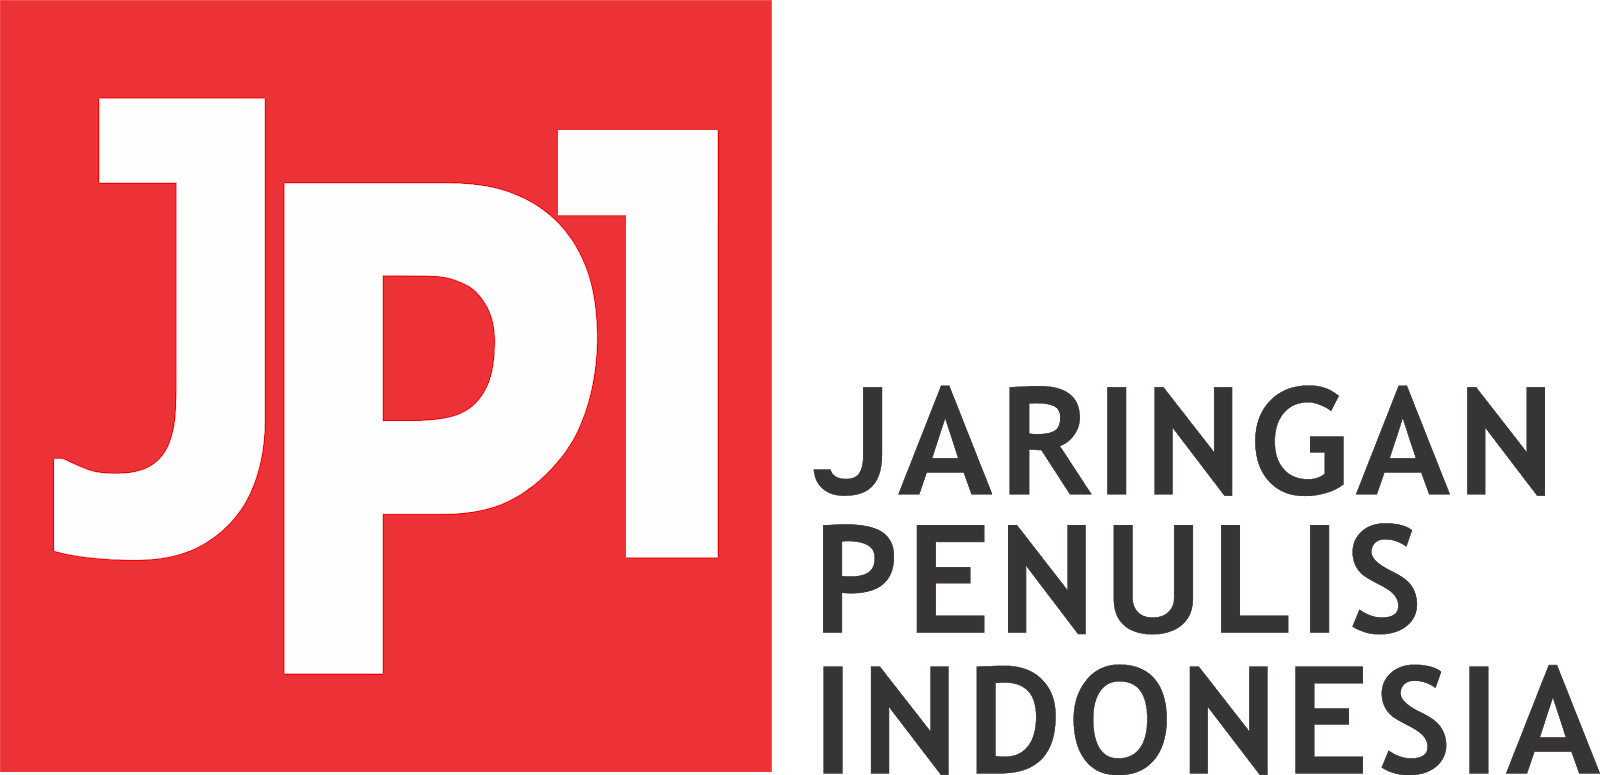 www.jaringanpenulis.com